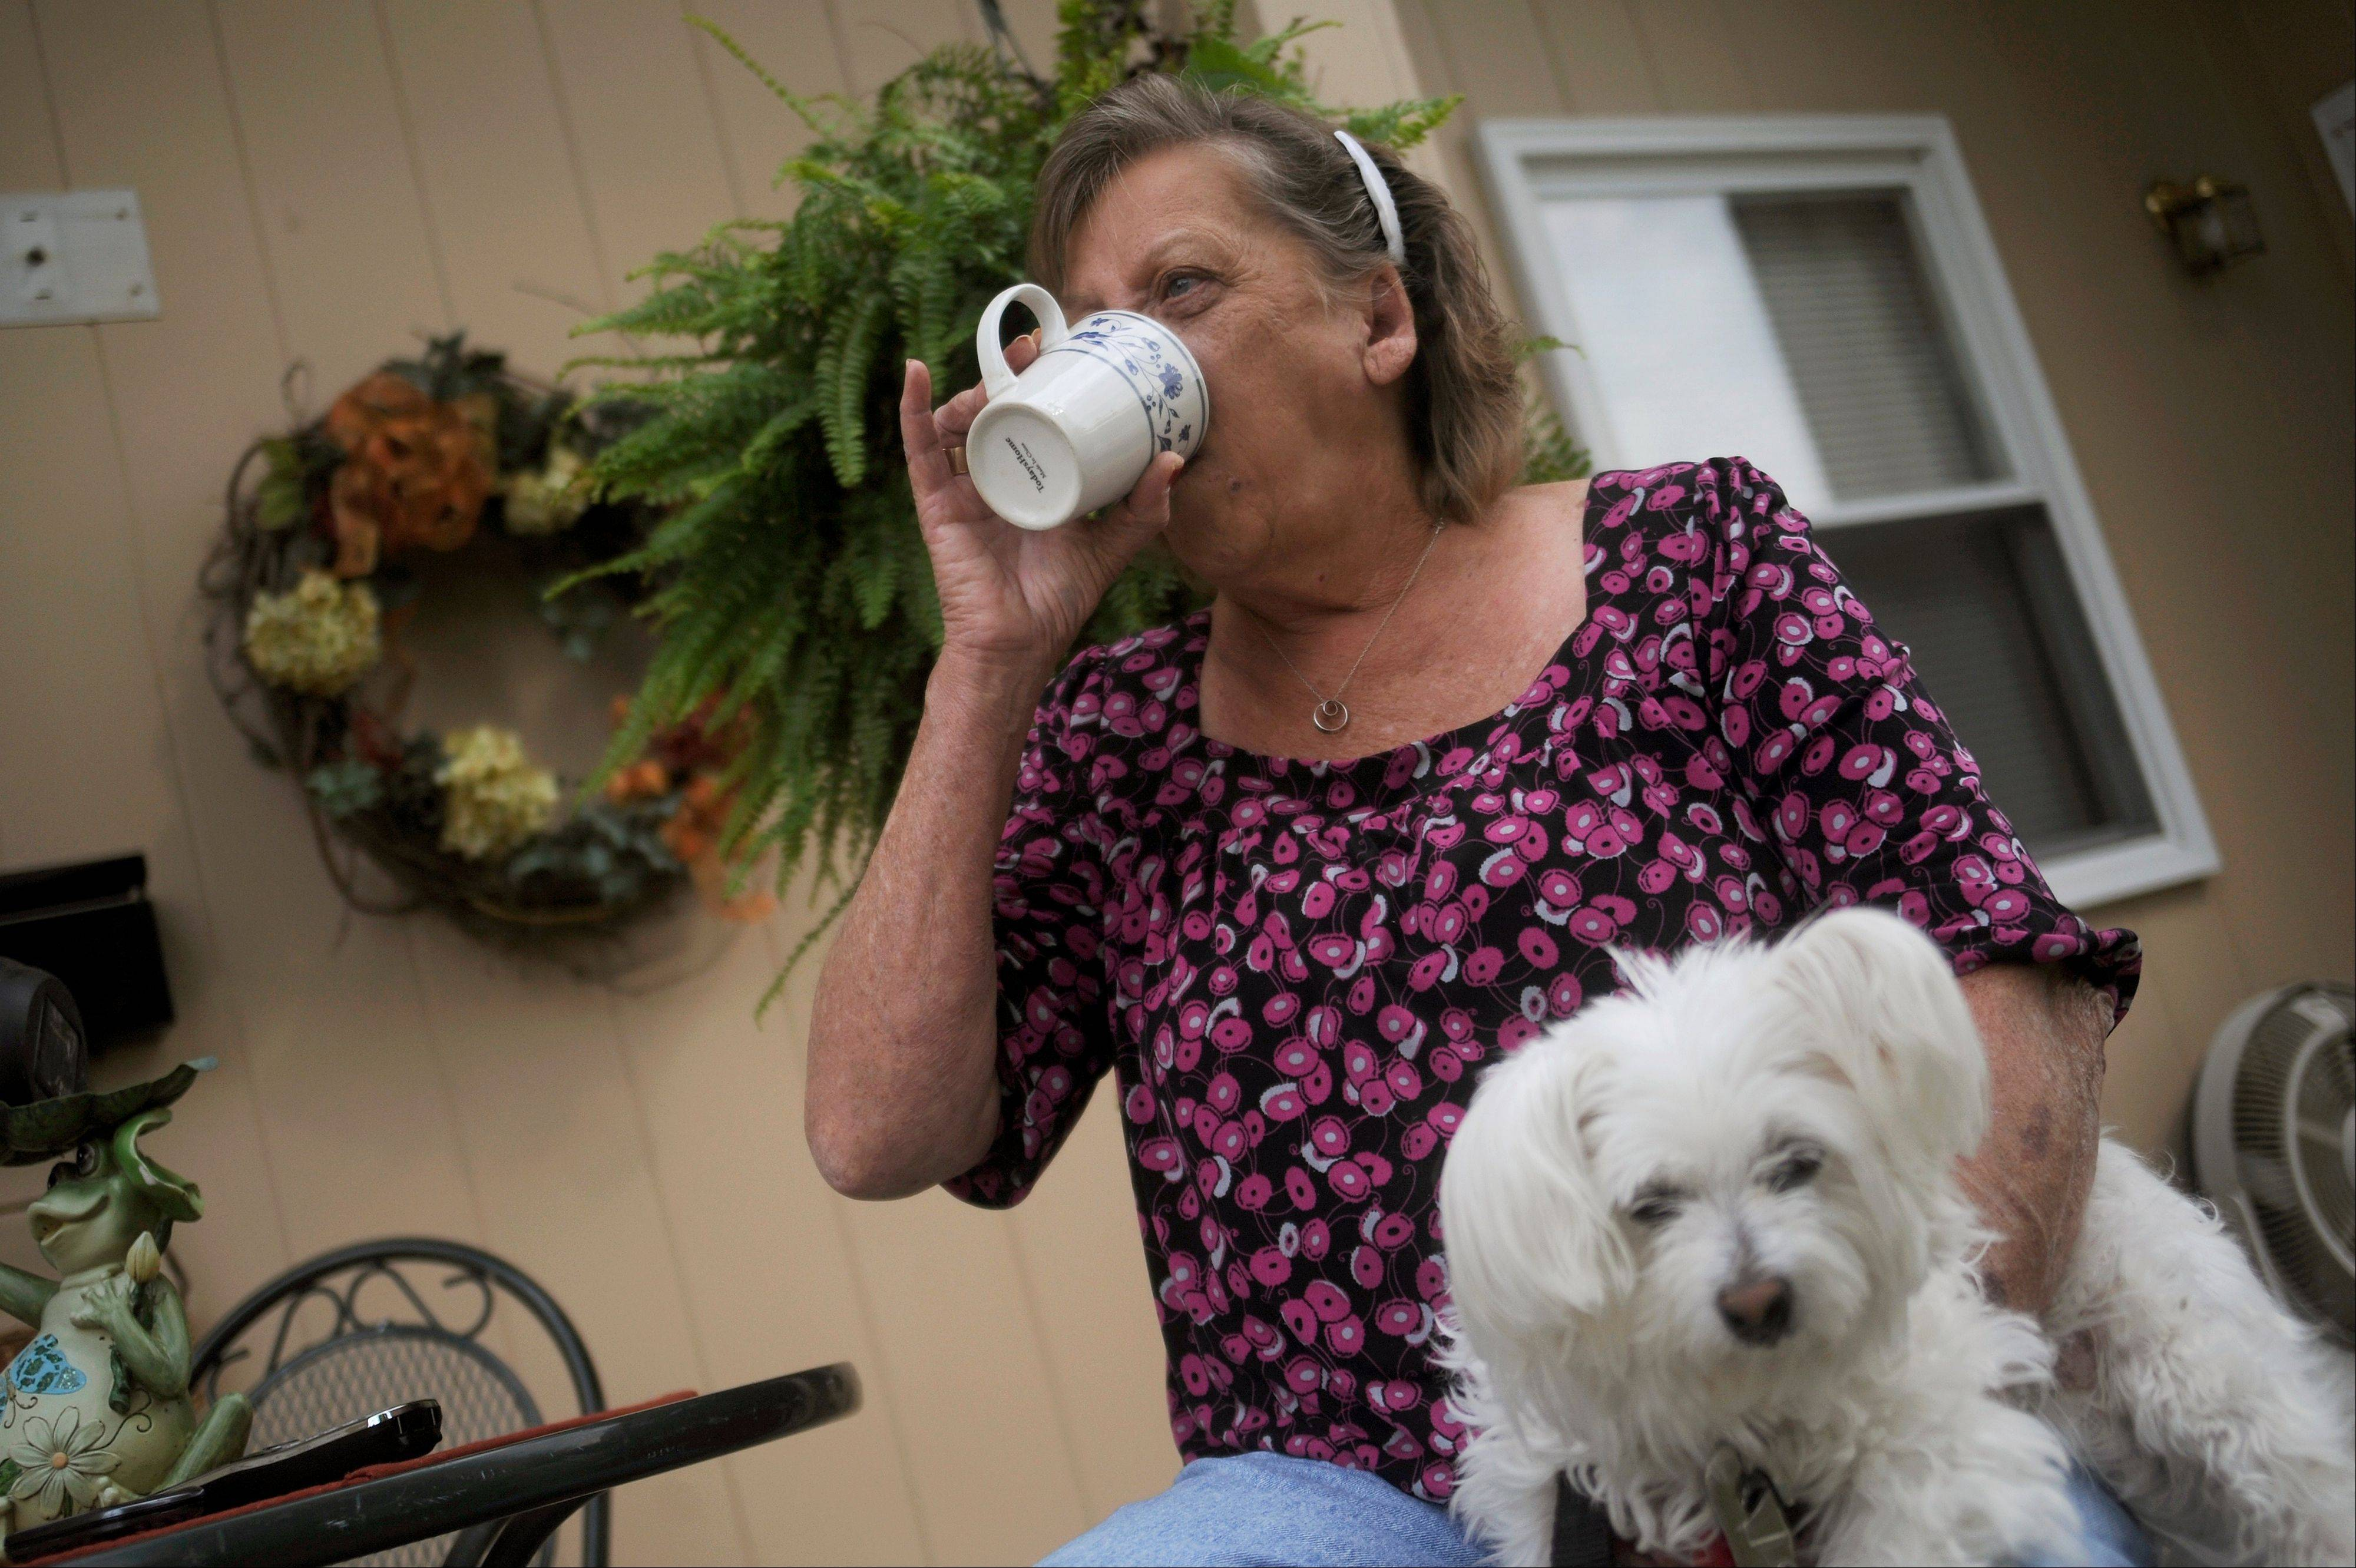 Patsy Bivins, 68 of Sturgis, Ky., drinks coffee Friday while sitting on her porch with her dog, Little Britches, at her apartment in Sturgis, Ky. Bivins was injected with steroids at St. Mary Sugricare in Evansville, Ind., who notified her of possibly being infected with bacterial Meningitis.